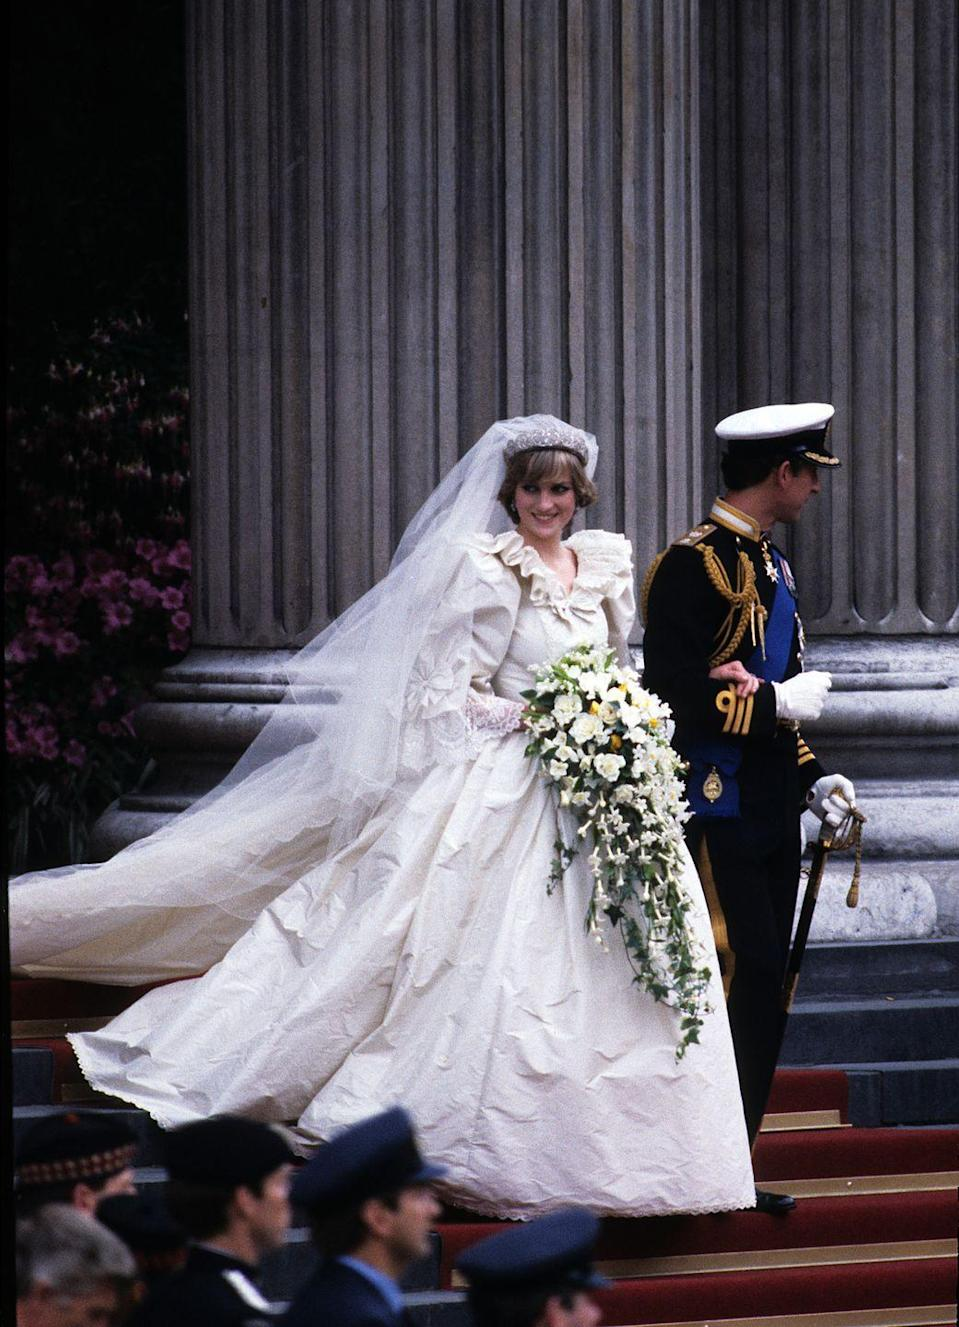 <p>Princess Diana's gown is arguably the most iconic wedding gown in history. The dramatic white dress was designed by David and Elizabeth Emanuel and featured a ruffled collar, long sleeves, and fabric for days.</p>